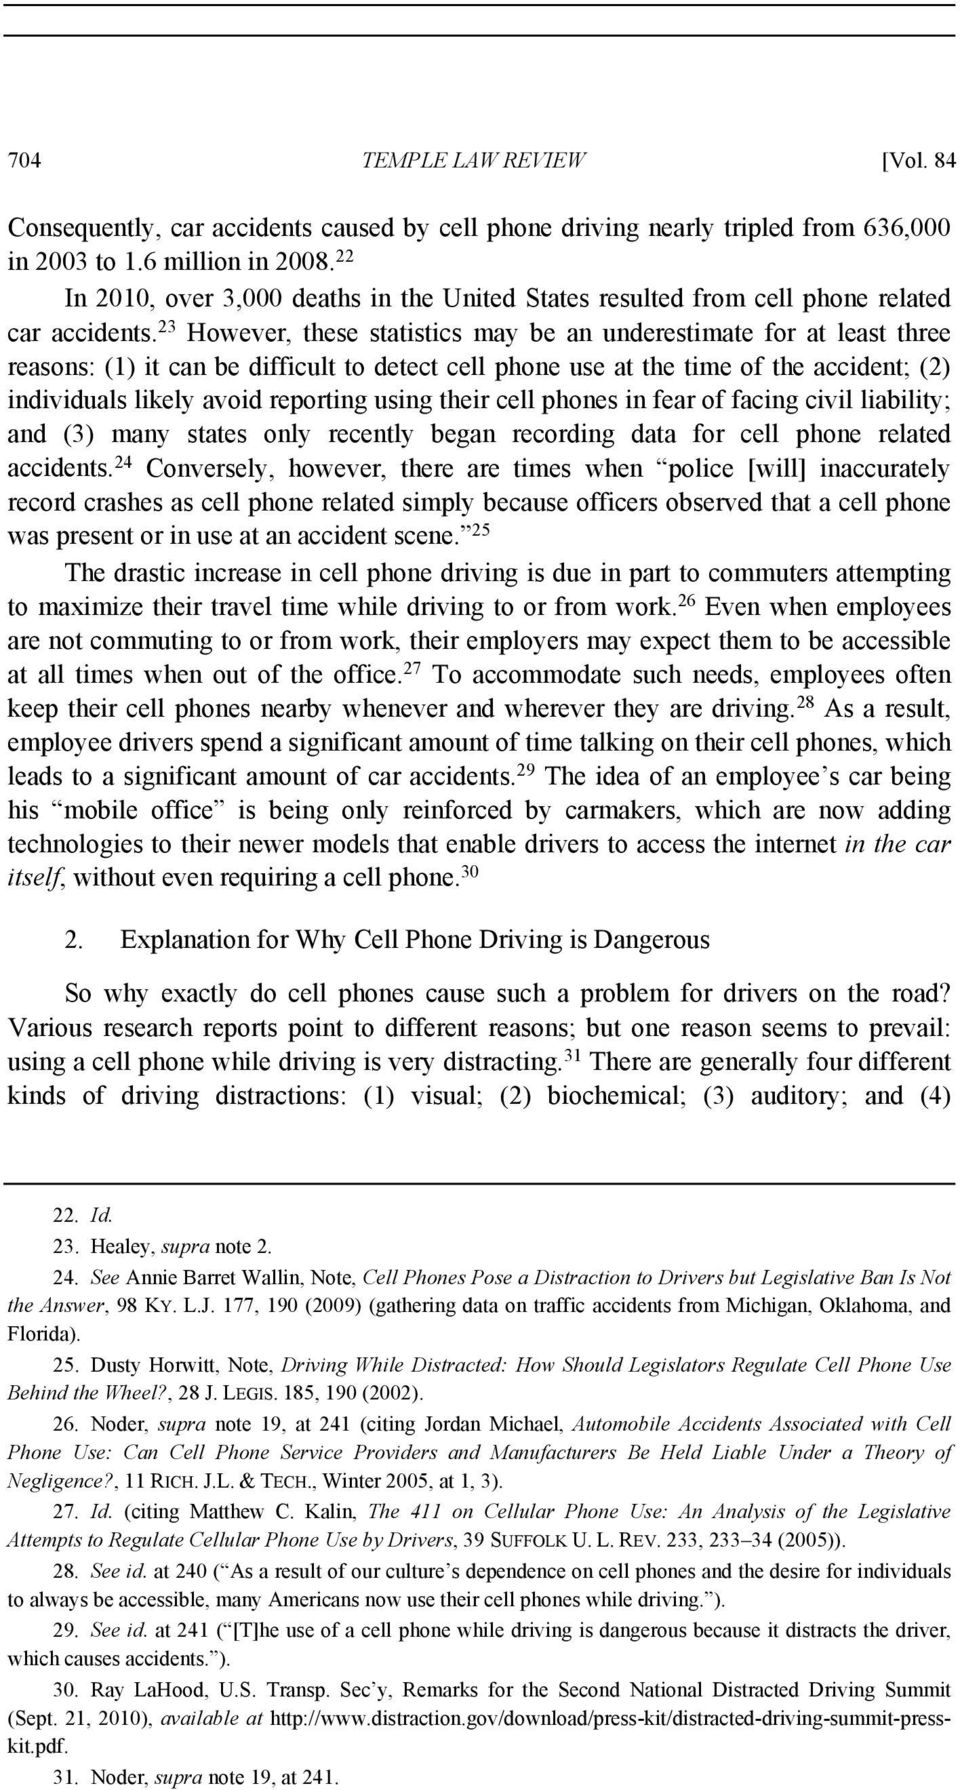 23 However, these statistics may be an underestimate for at least three reasons: (1) it can be difficult to detect cell phone use at the time of the accident; (2) individuals likely avoid reporting